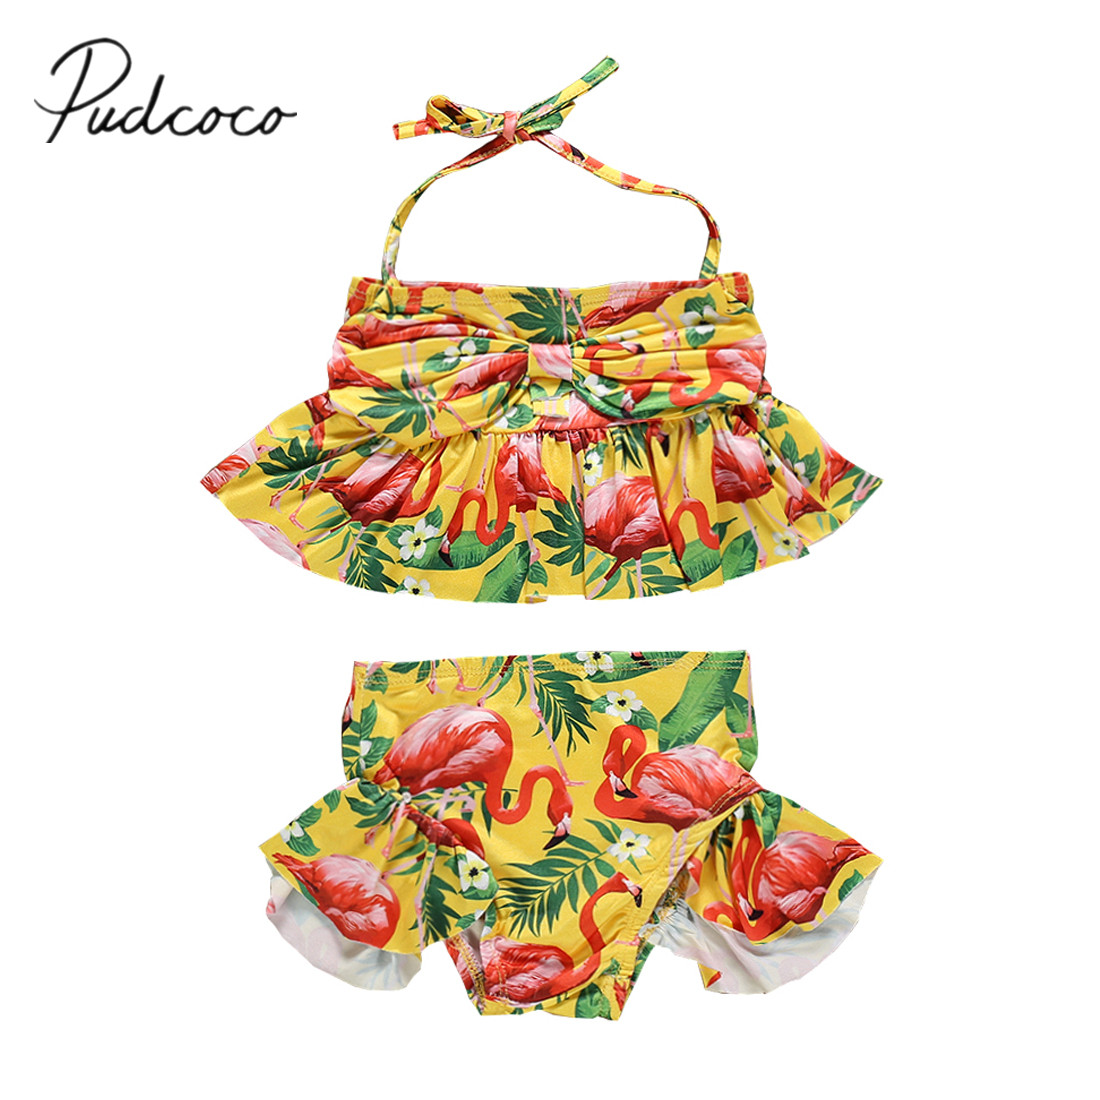 Summer Baby Girls Swimming Clothes Sets Infant Baby Fashion Sling Vest+short Skirts+hat 3pcs Outfits For Newborn Baby Swimsuits Luggage & Bags